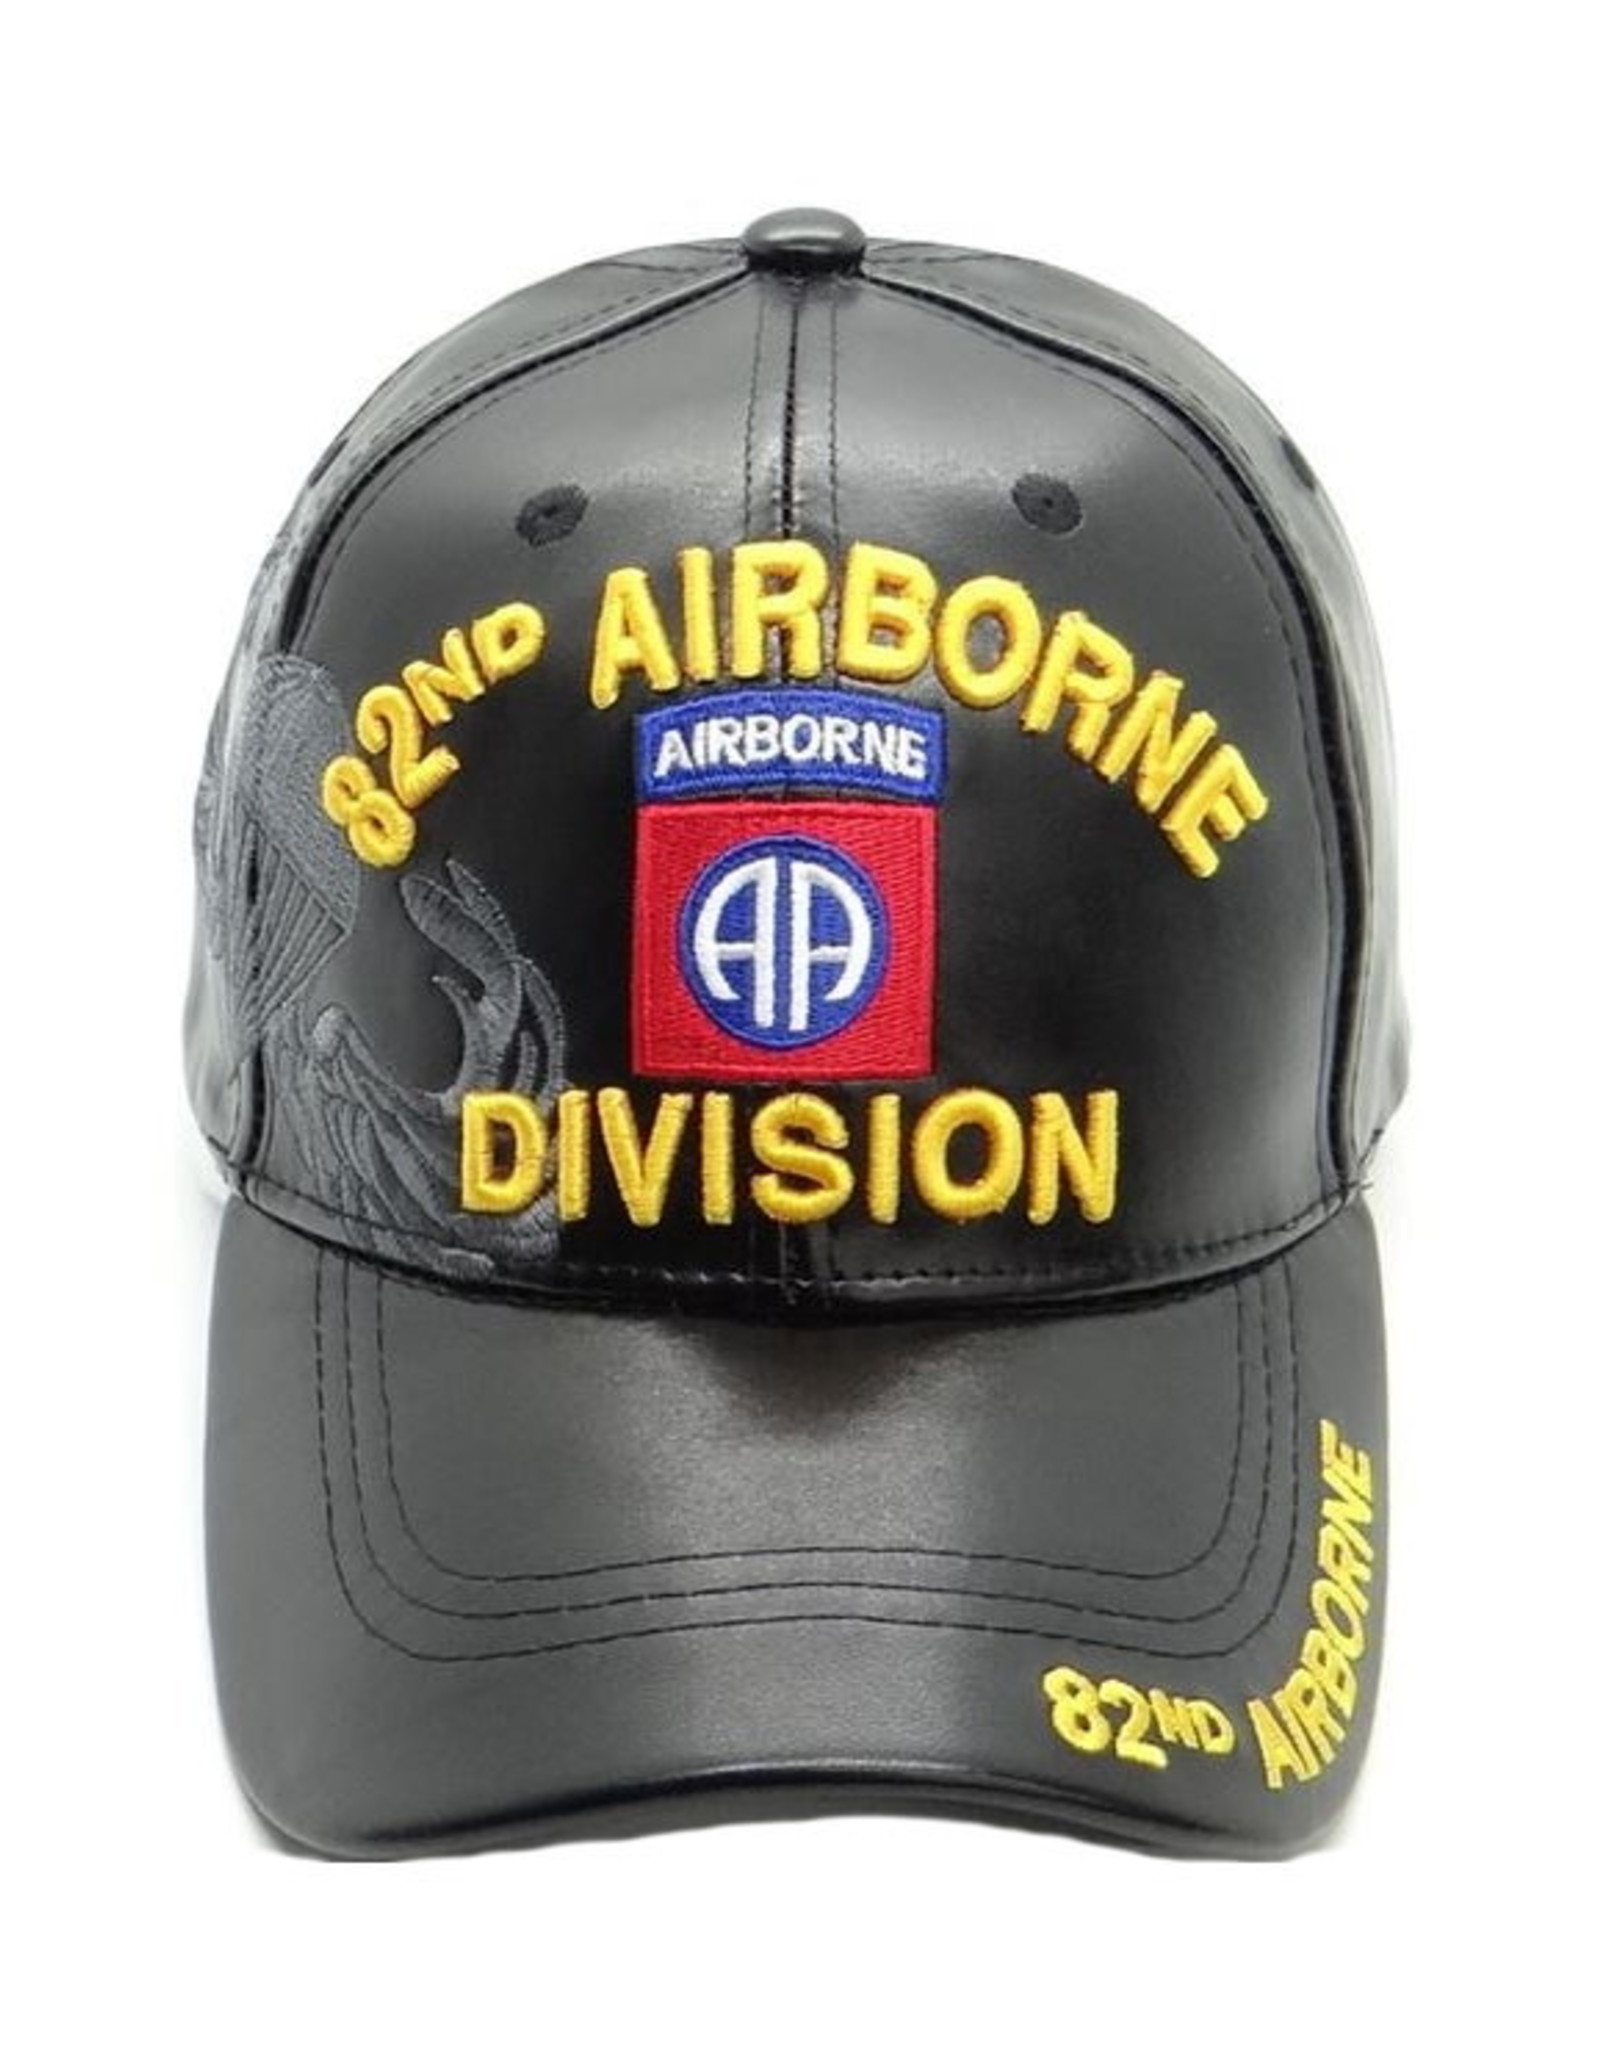 MidMil 82nd Airborne Division Pleather Hat with Emblem and Shadow Black Pleather